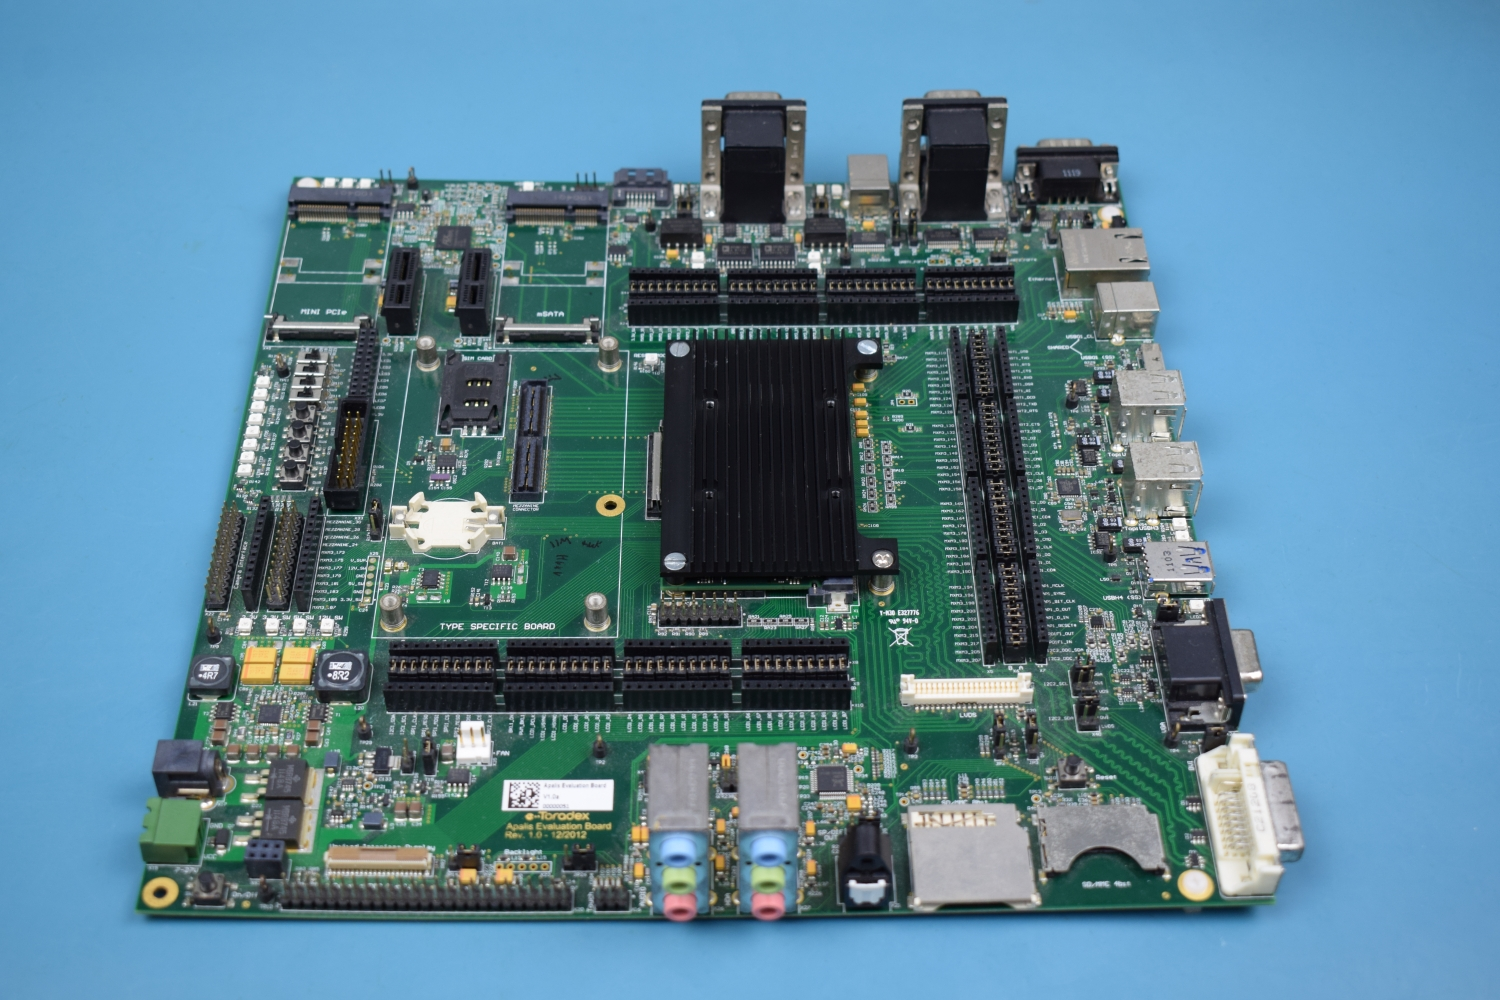 Apalis Heatsink attached to the Apalis Evaluation Board